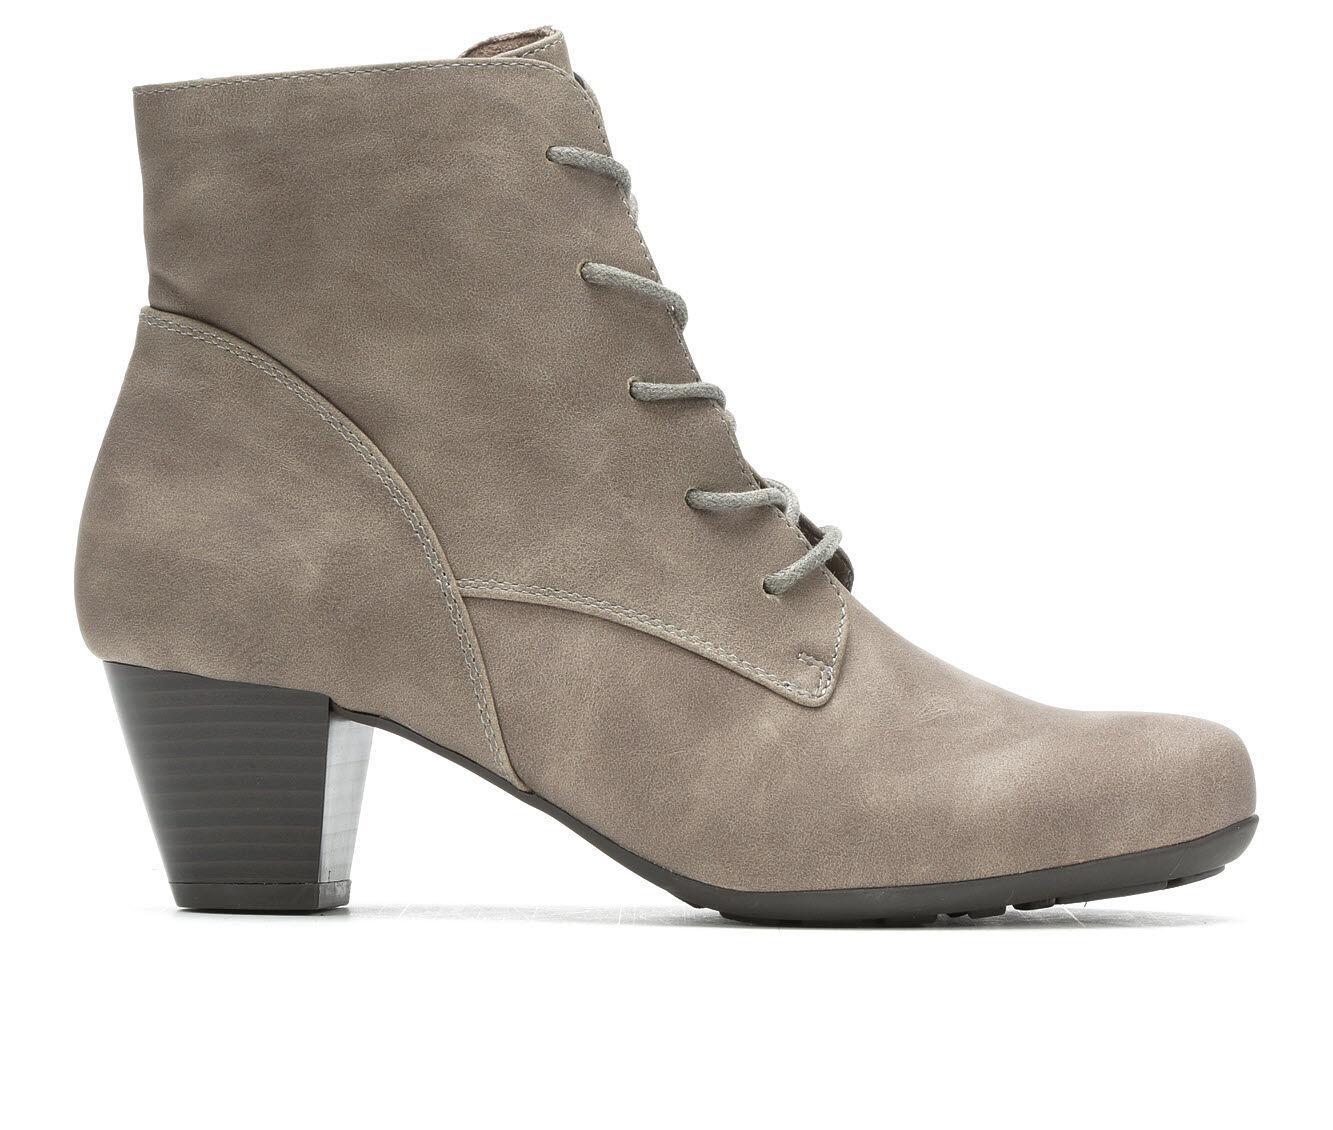 Boots for Women | Women's Boots & Ankle Booties